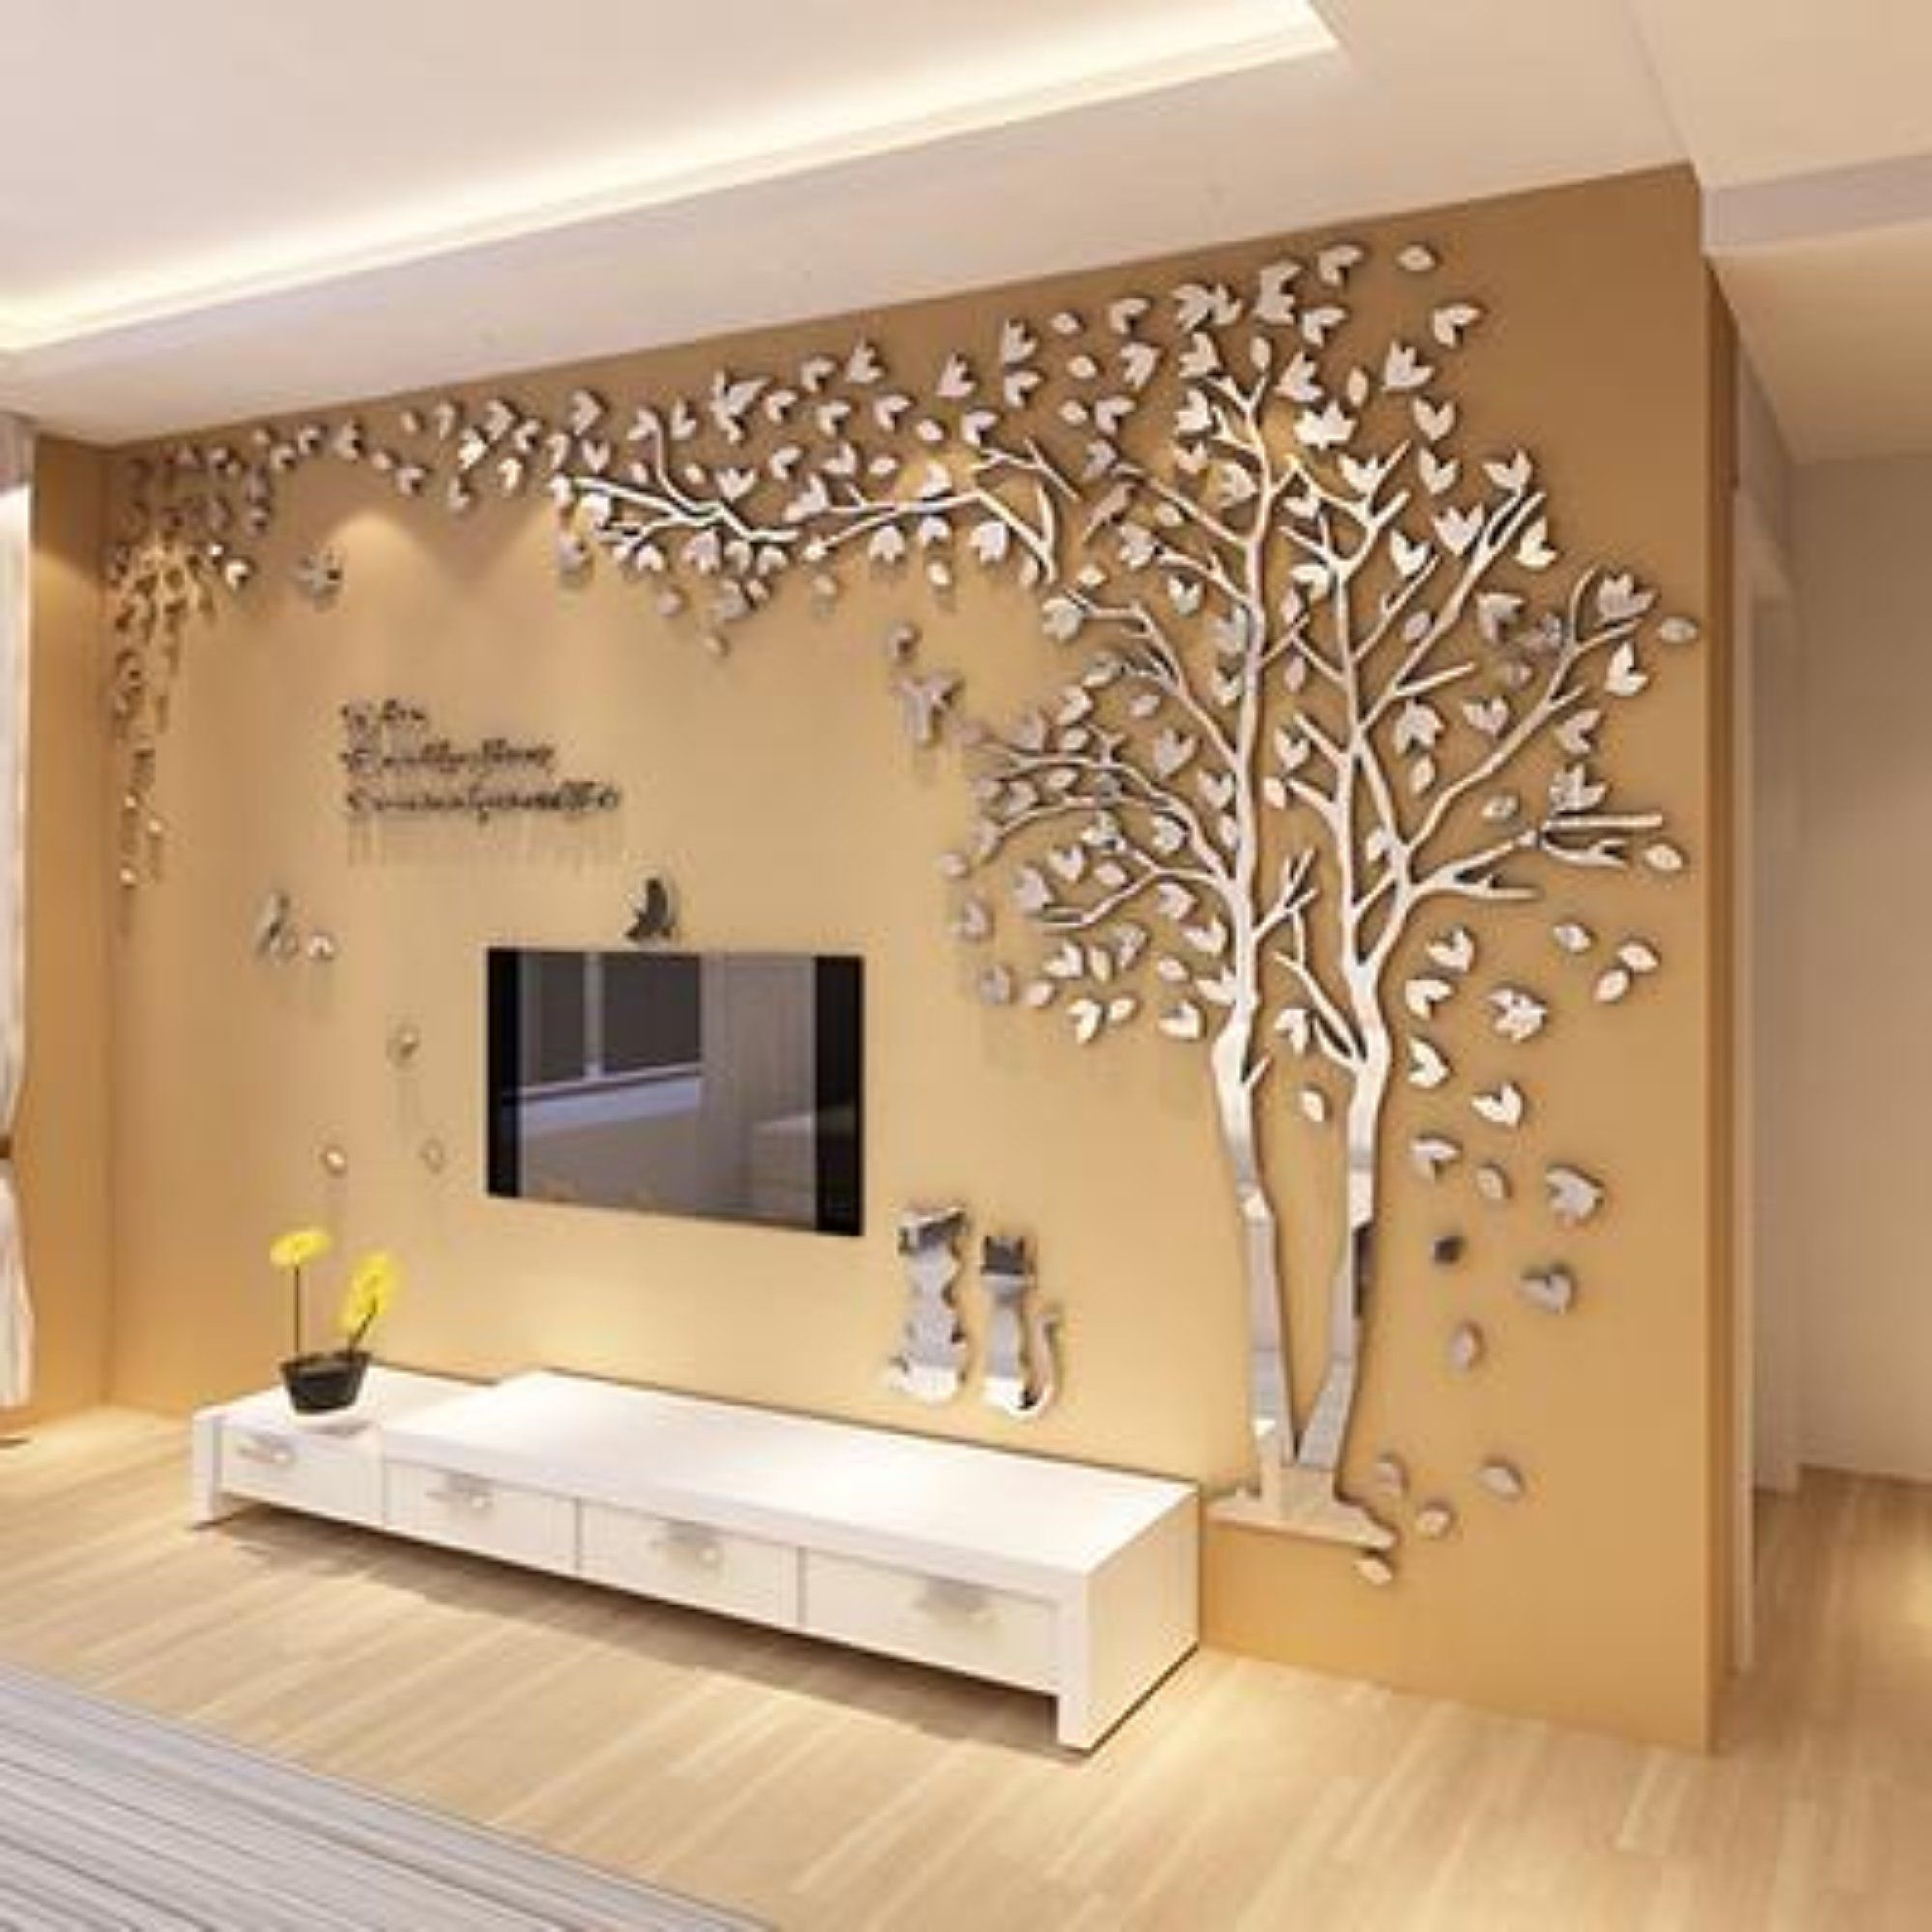 Acrylic Wall Stickers Wonderful Tv Background Decoration Flowers Acrylic Wall Sticker Best Creative Wall Decor Living Room Wall Designs Wall Decor Living Room Home wall decor for living room